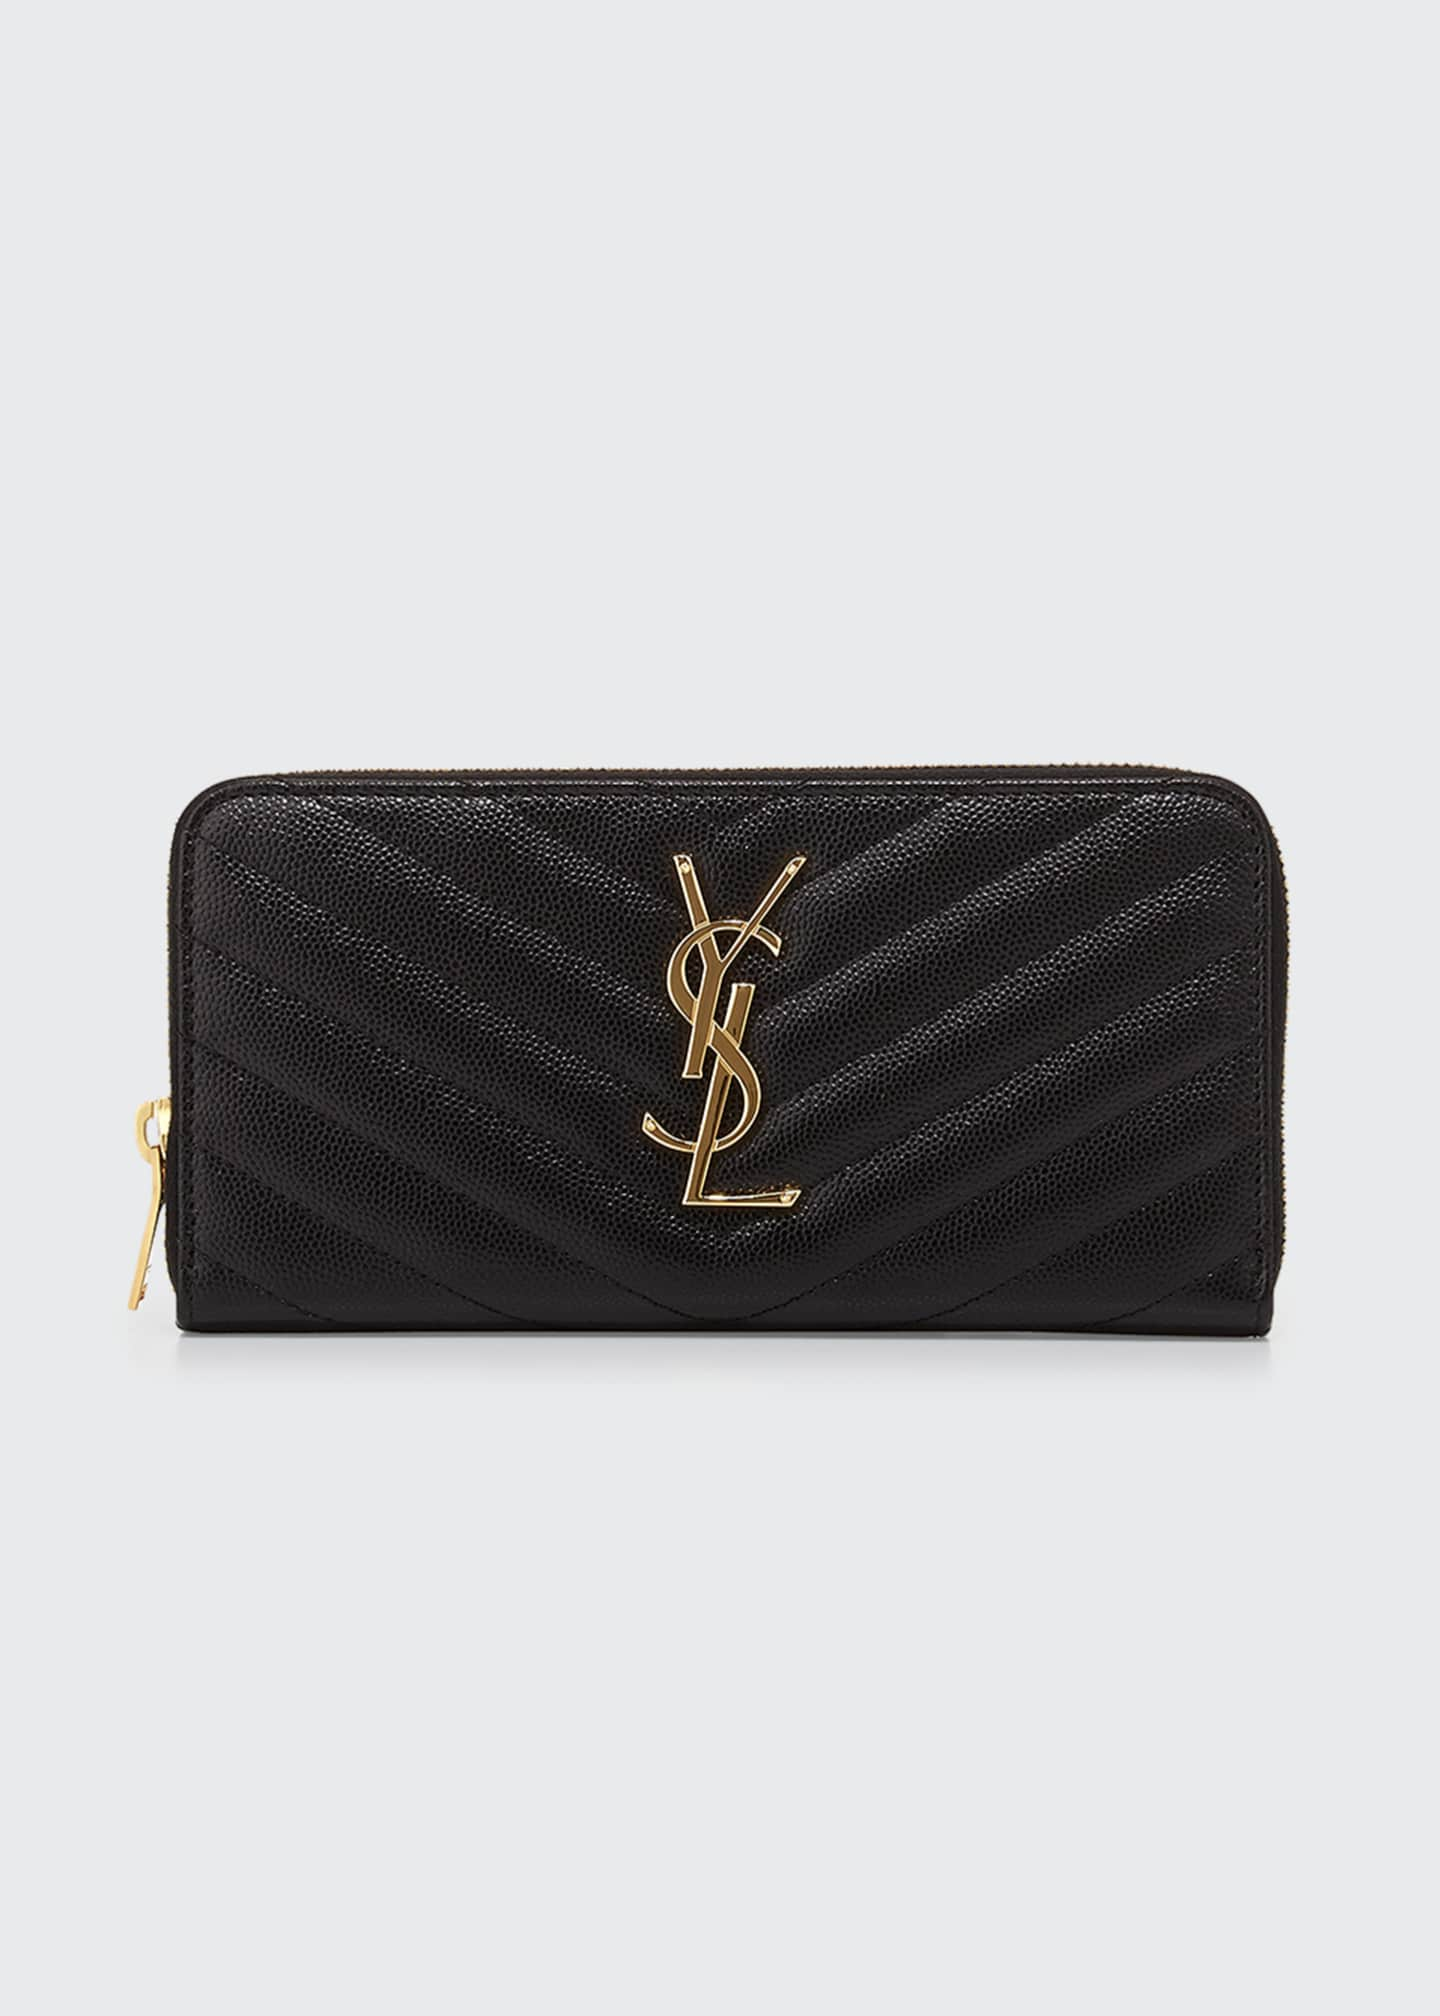 Image 1 of 2: YSL Monogram Grain de Poudre Zip-Around Wallet